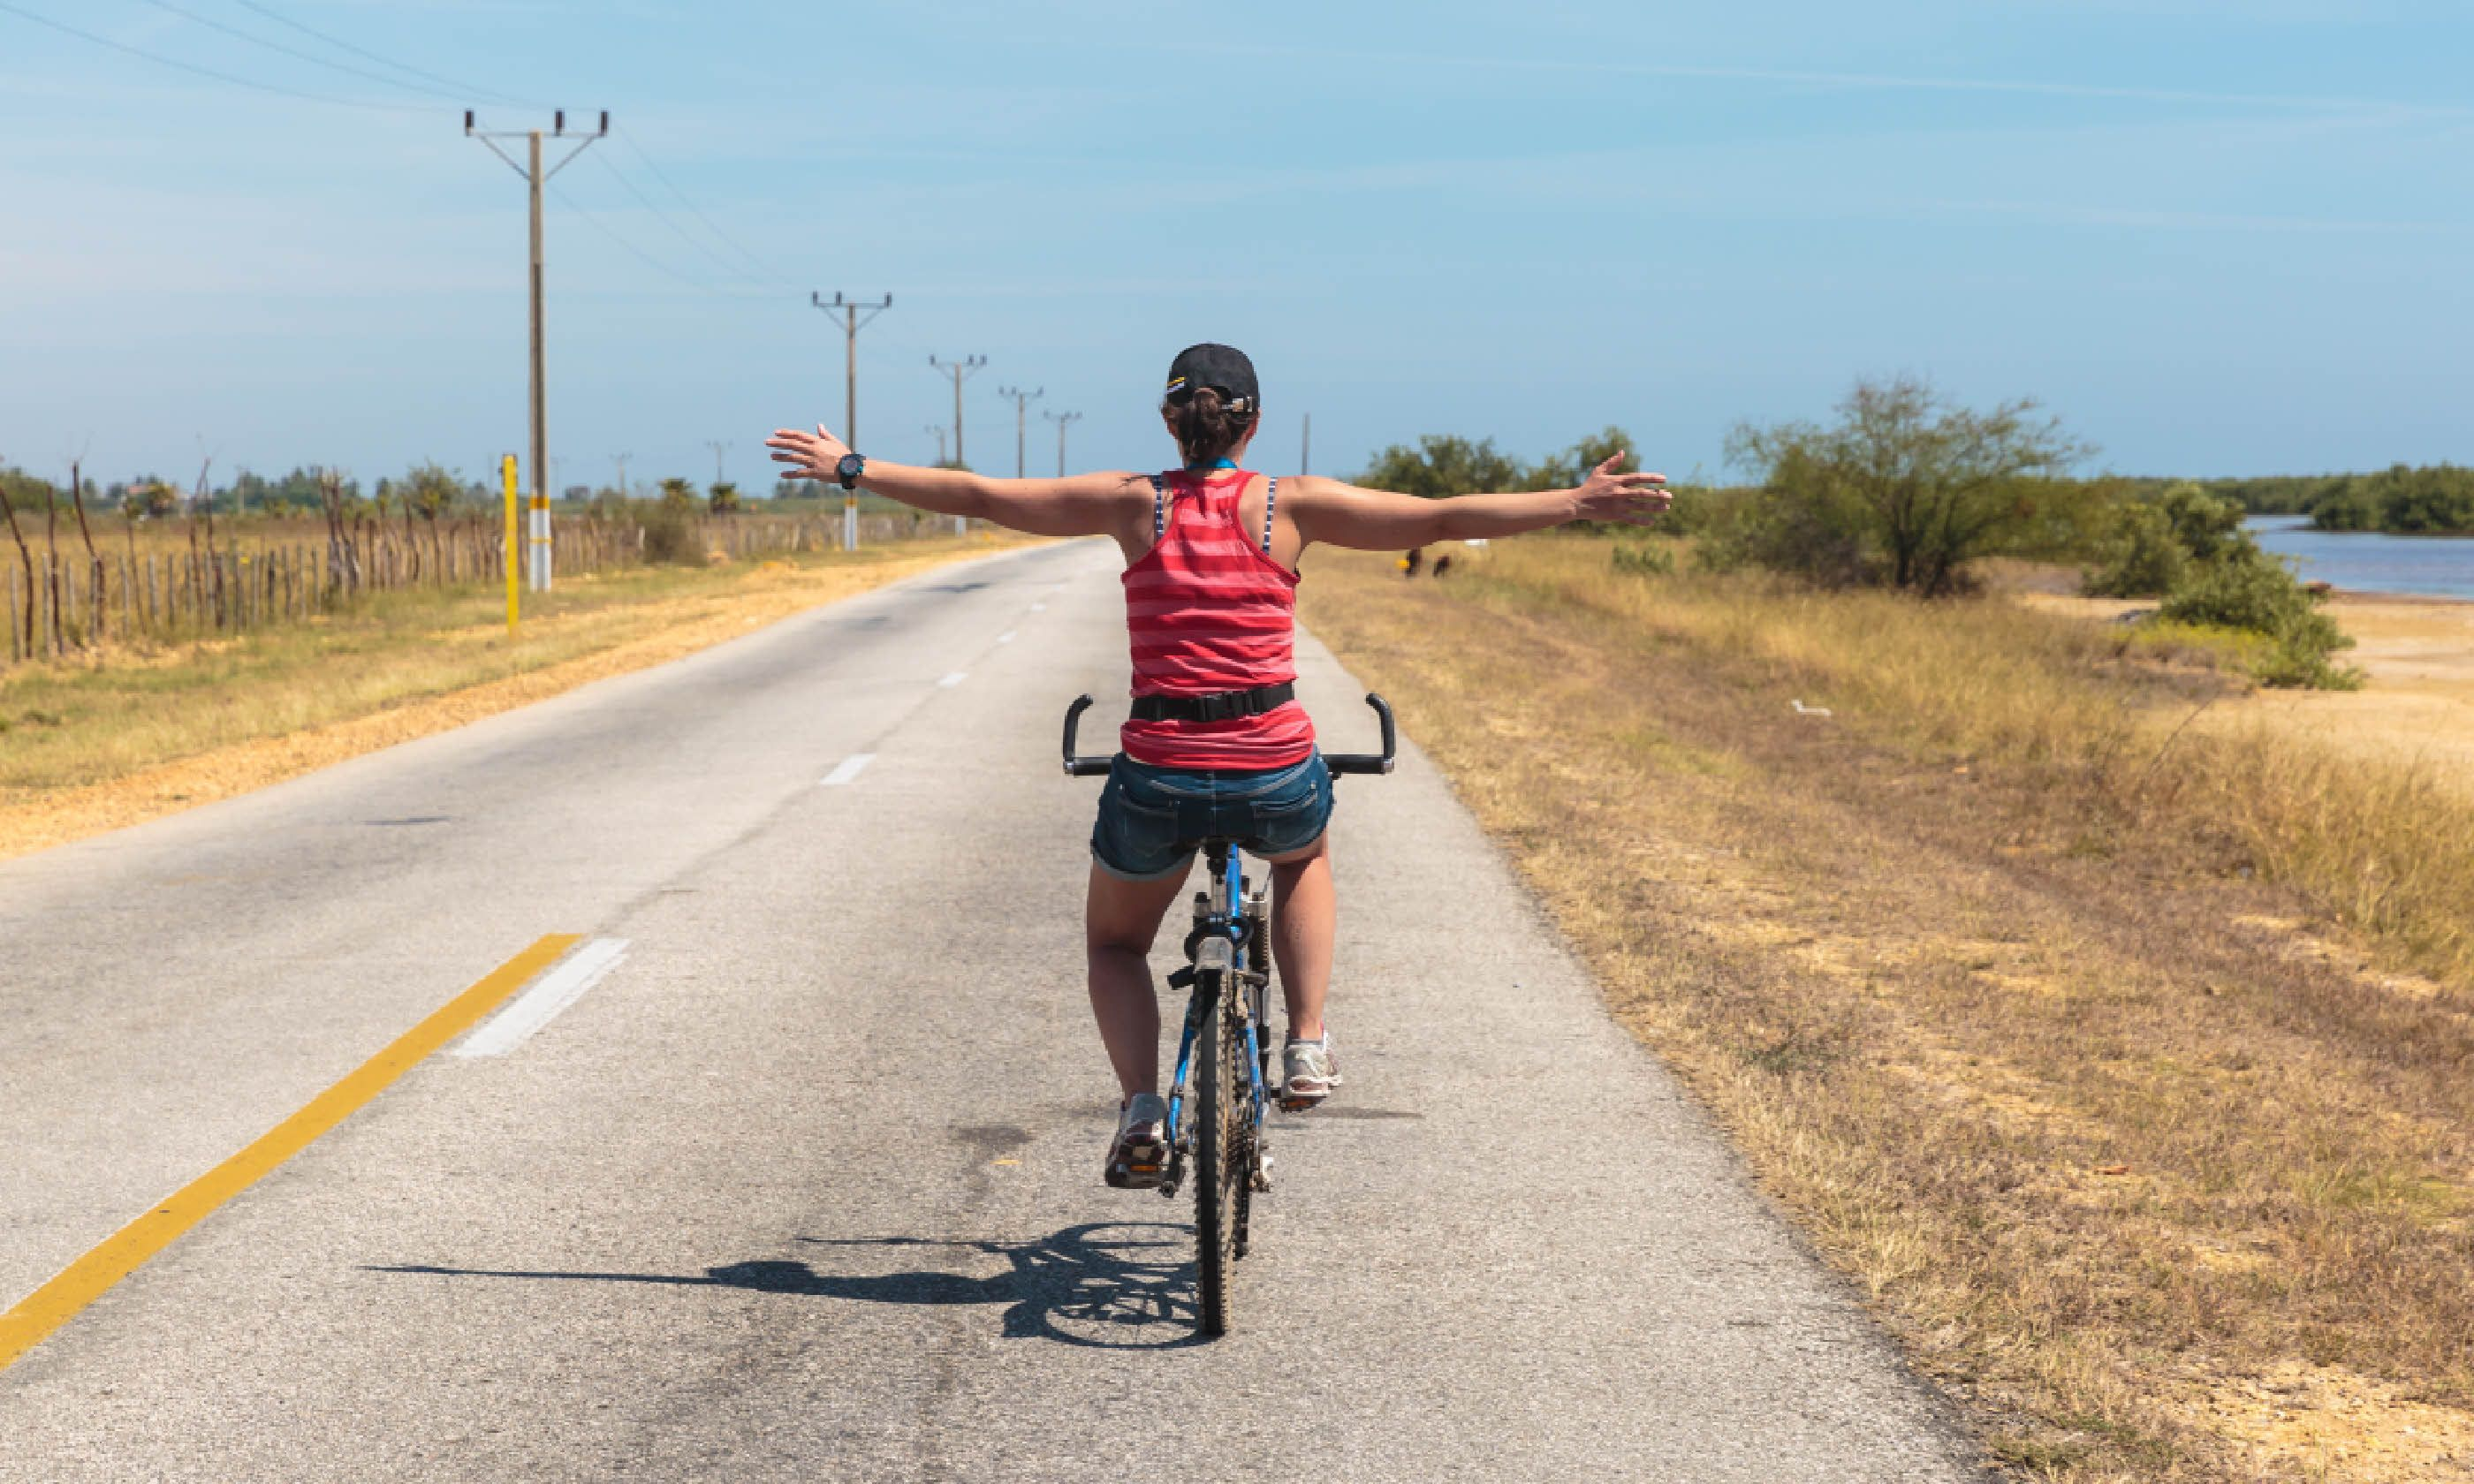 Relaxing cycling on the road of Trinidad, Cuba (Shutterstock)